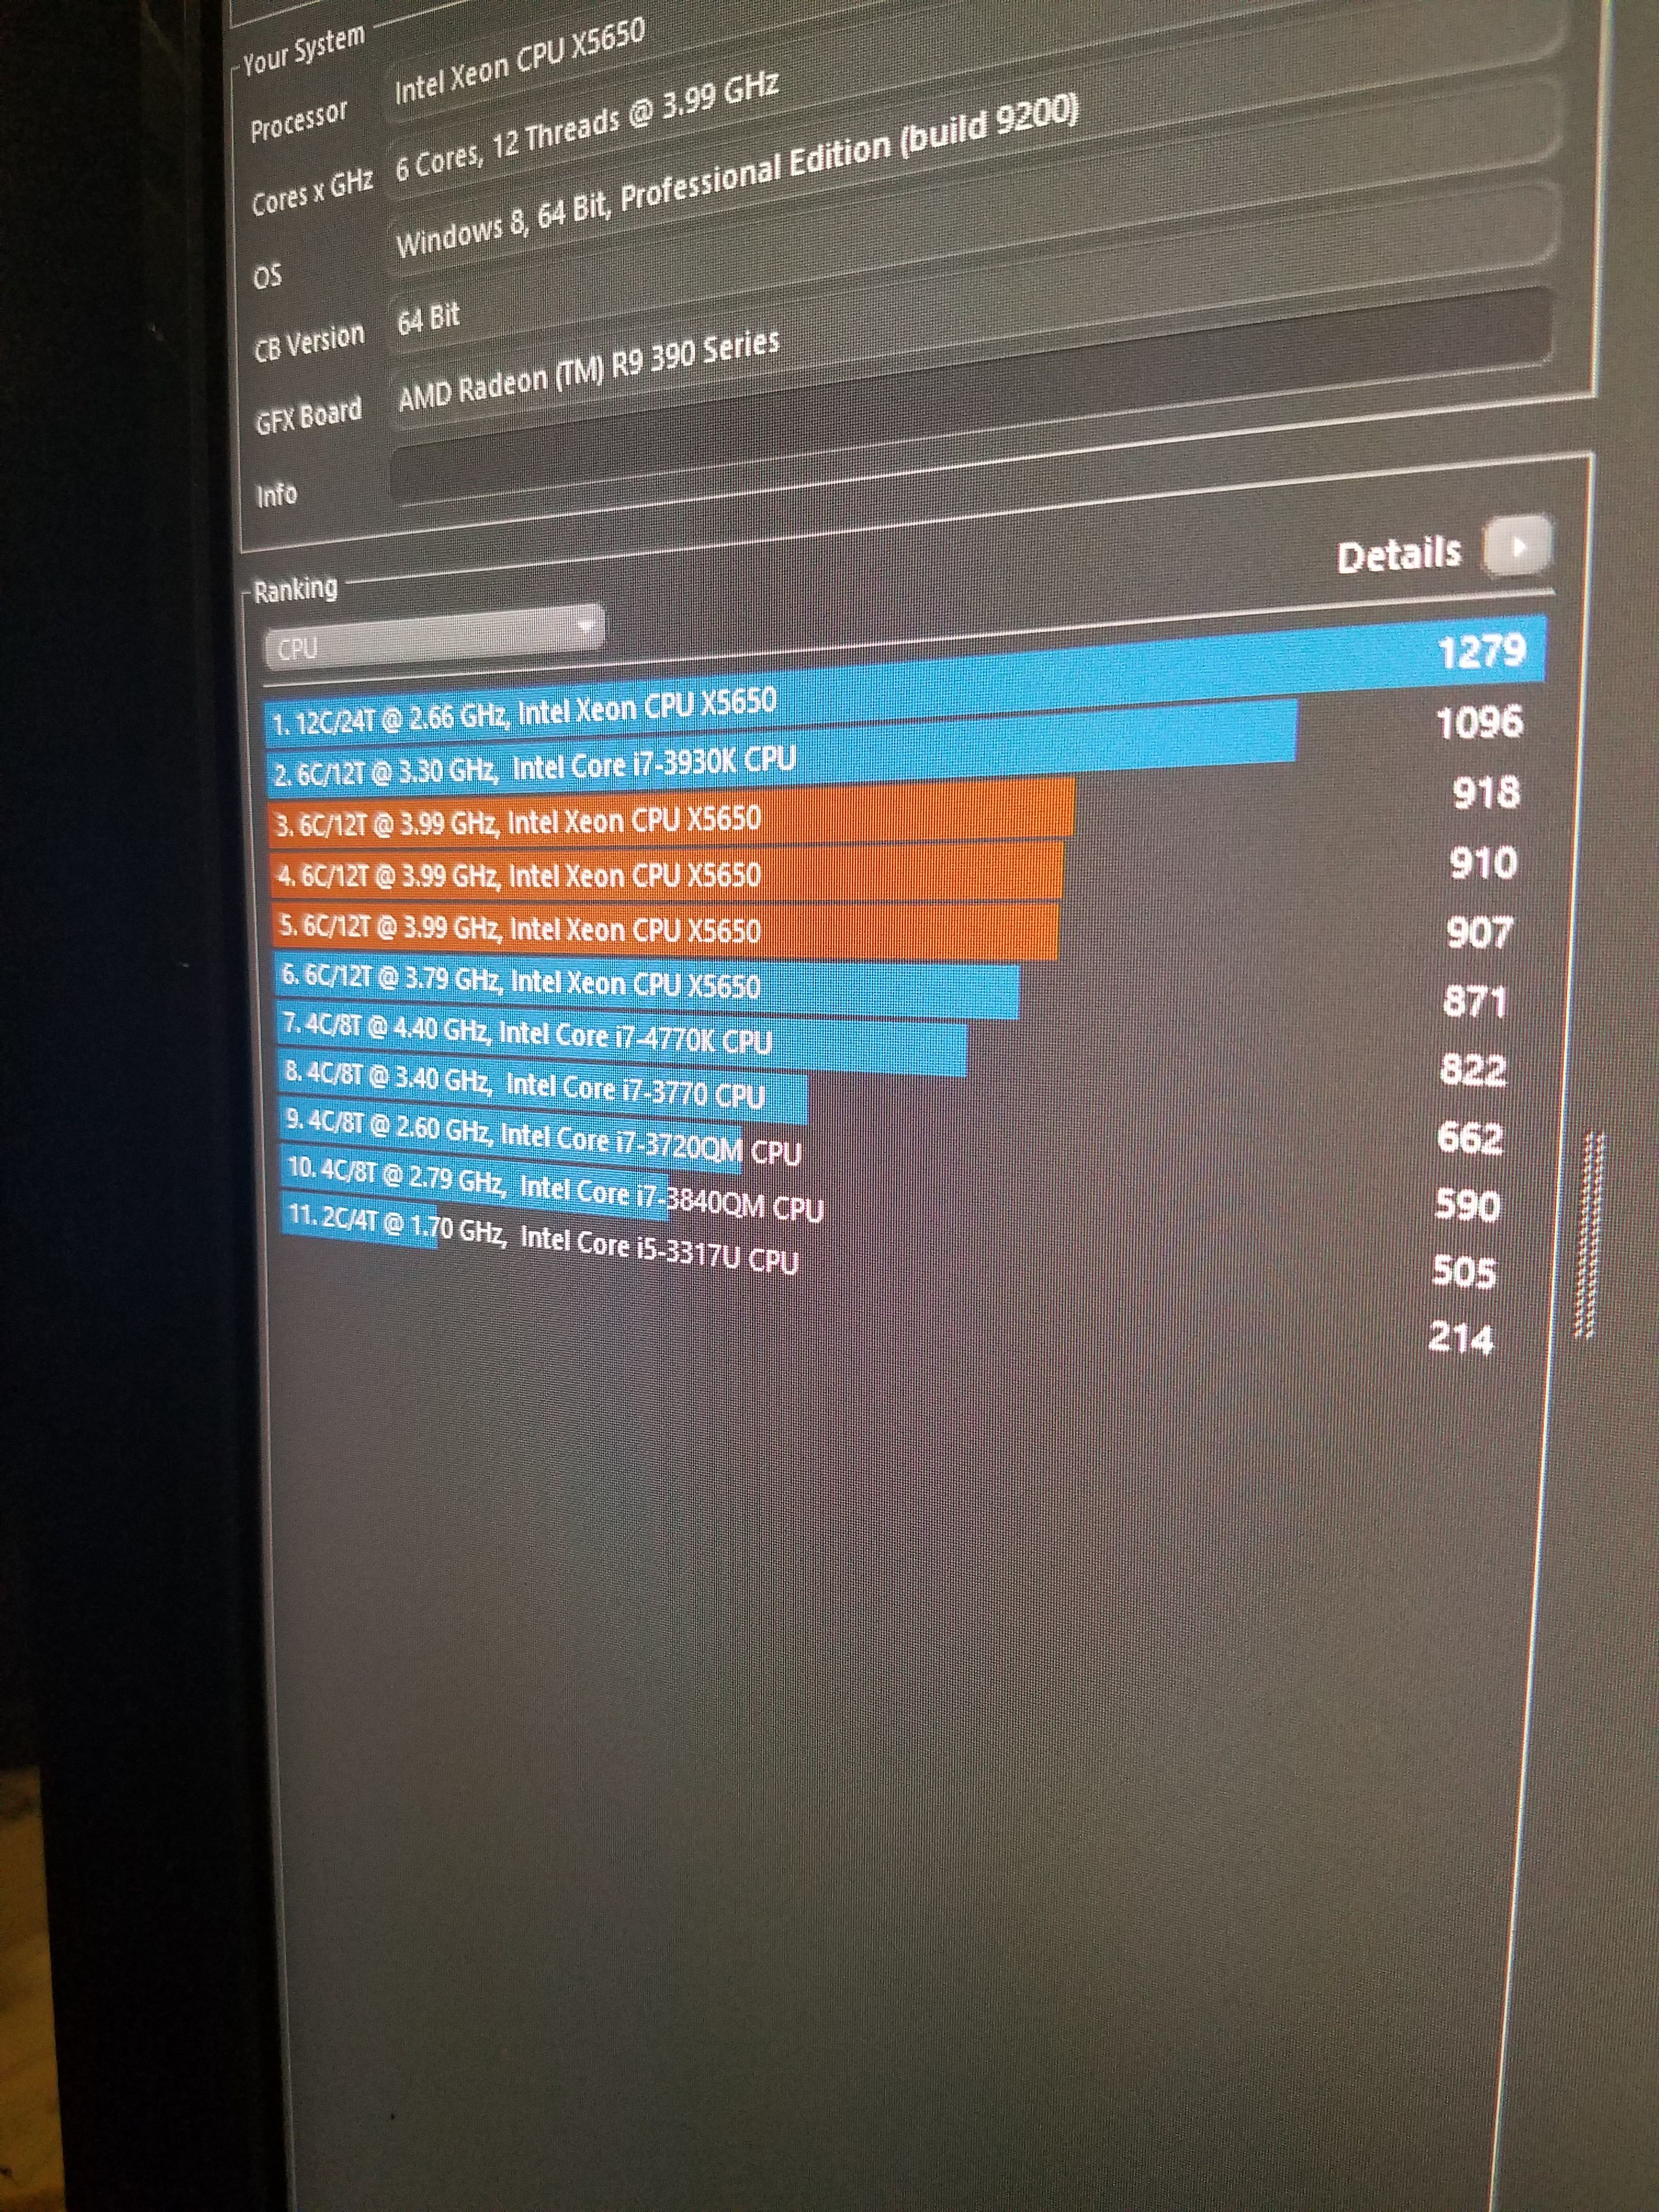 Official] - Xeon X5660-X58 Review & Discussion [and Xeon L5639